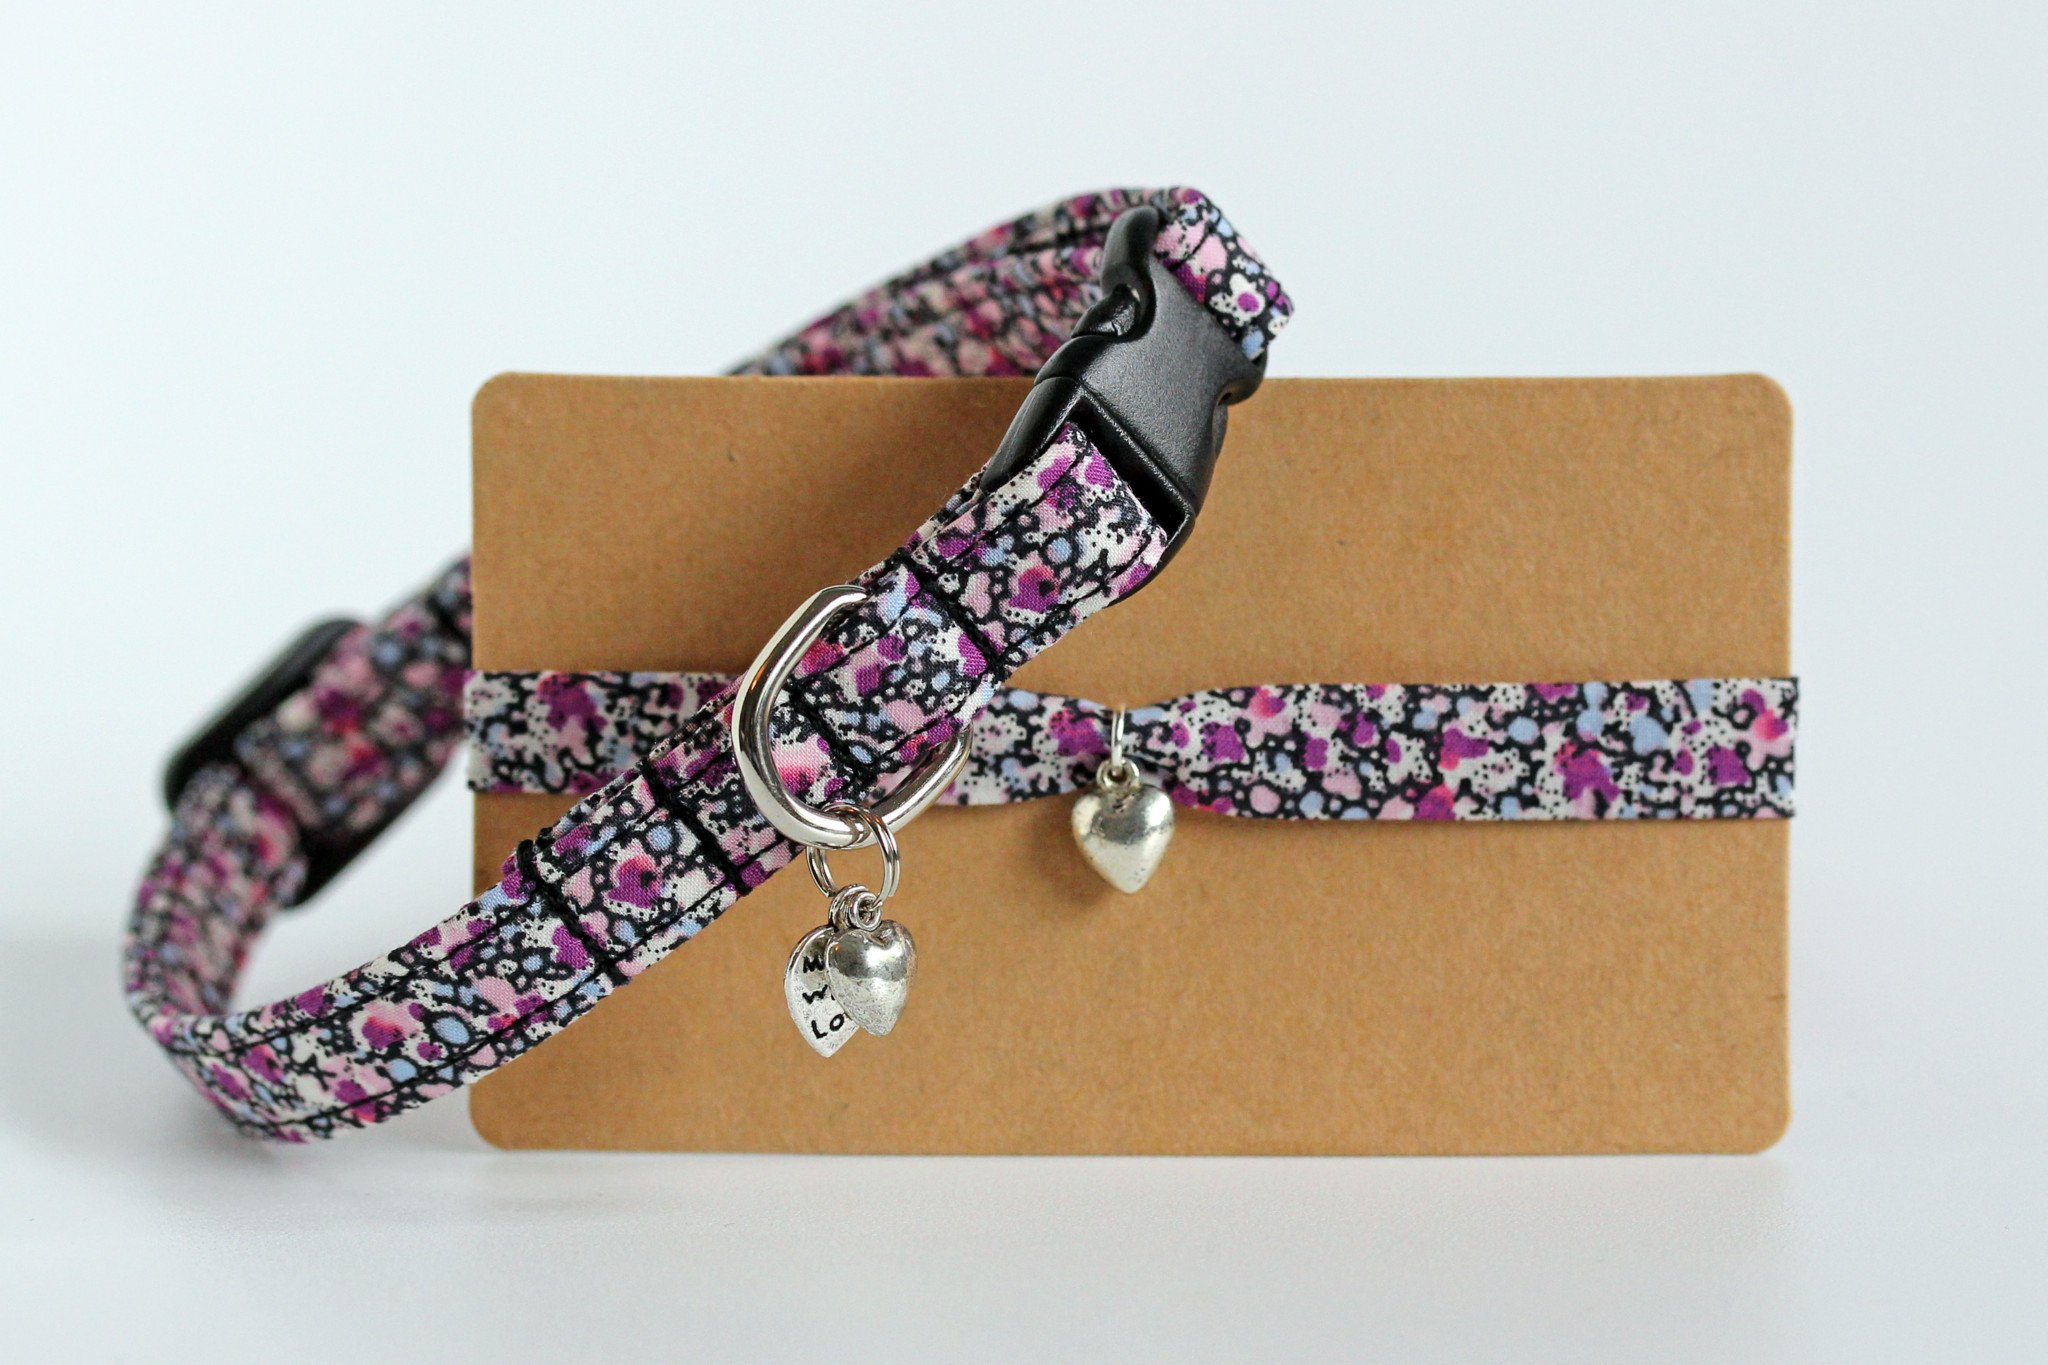 https://www.etsy.com/uk/listing/450564372/liberty-fabric-small-dog-or-puppy-collar?ref=shop_home_active_8